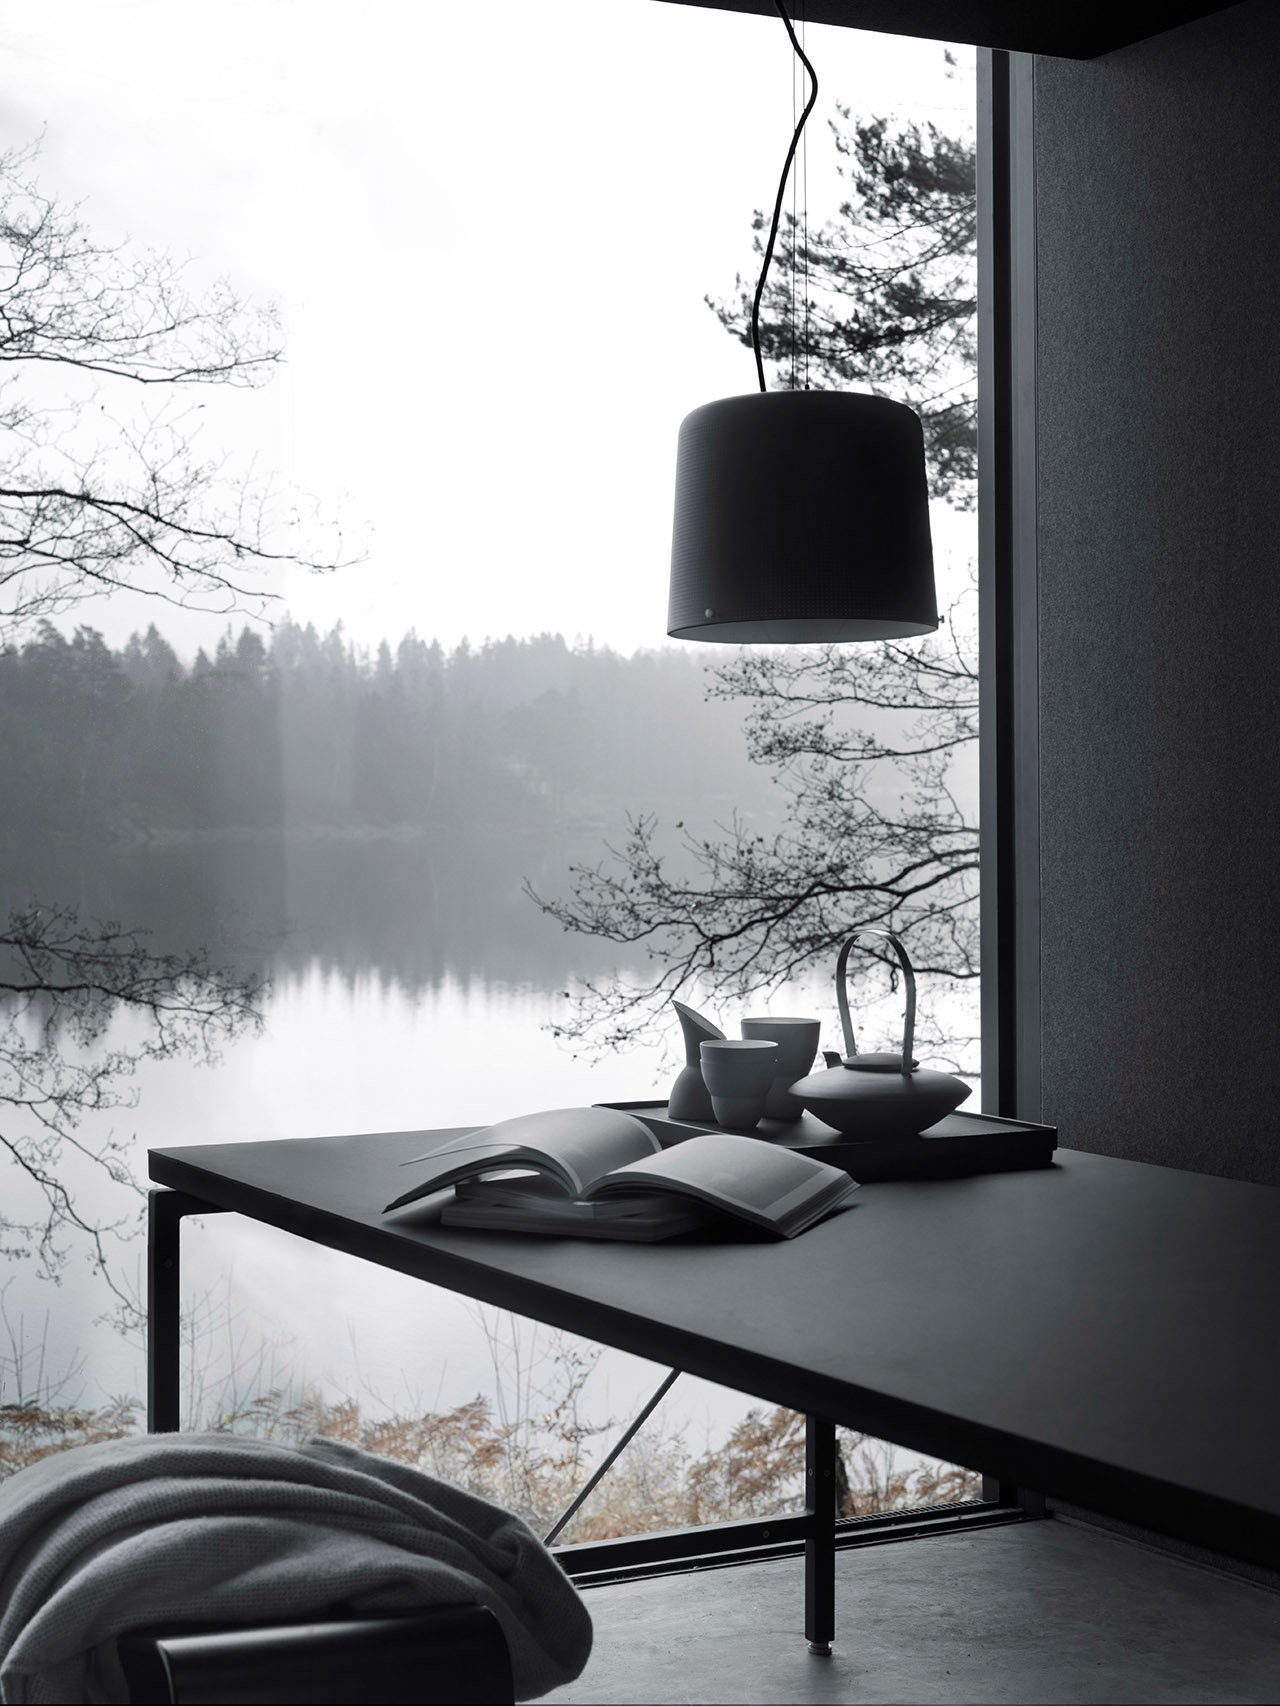 The dining area of the Vipp 'Shelter' in Immeln, Sweden.